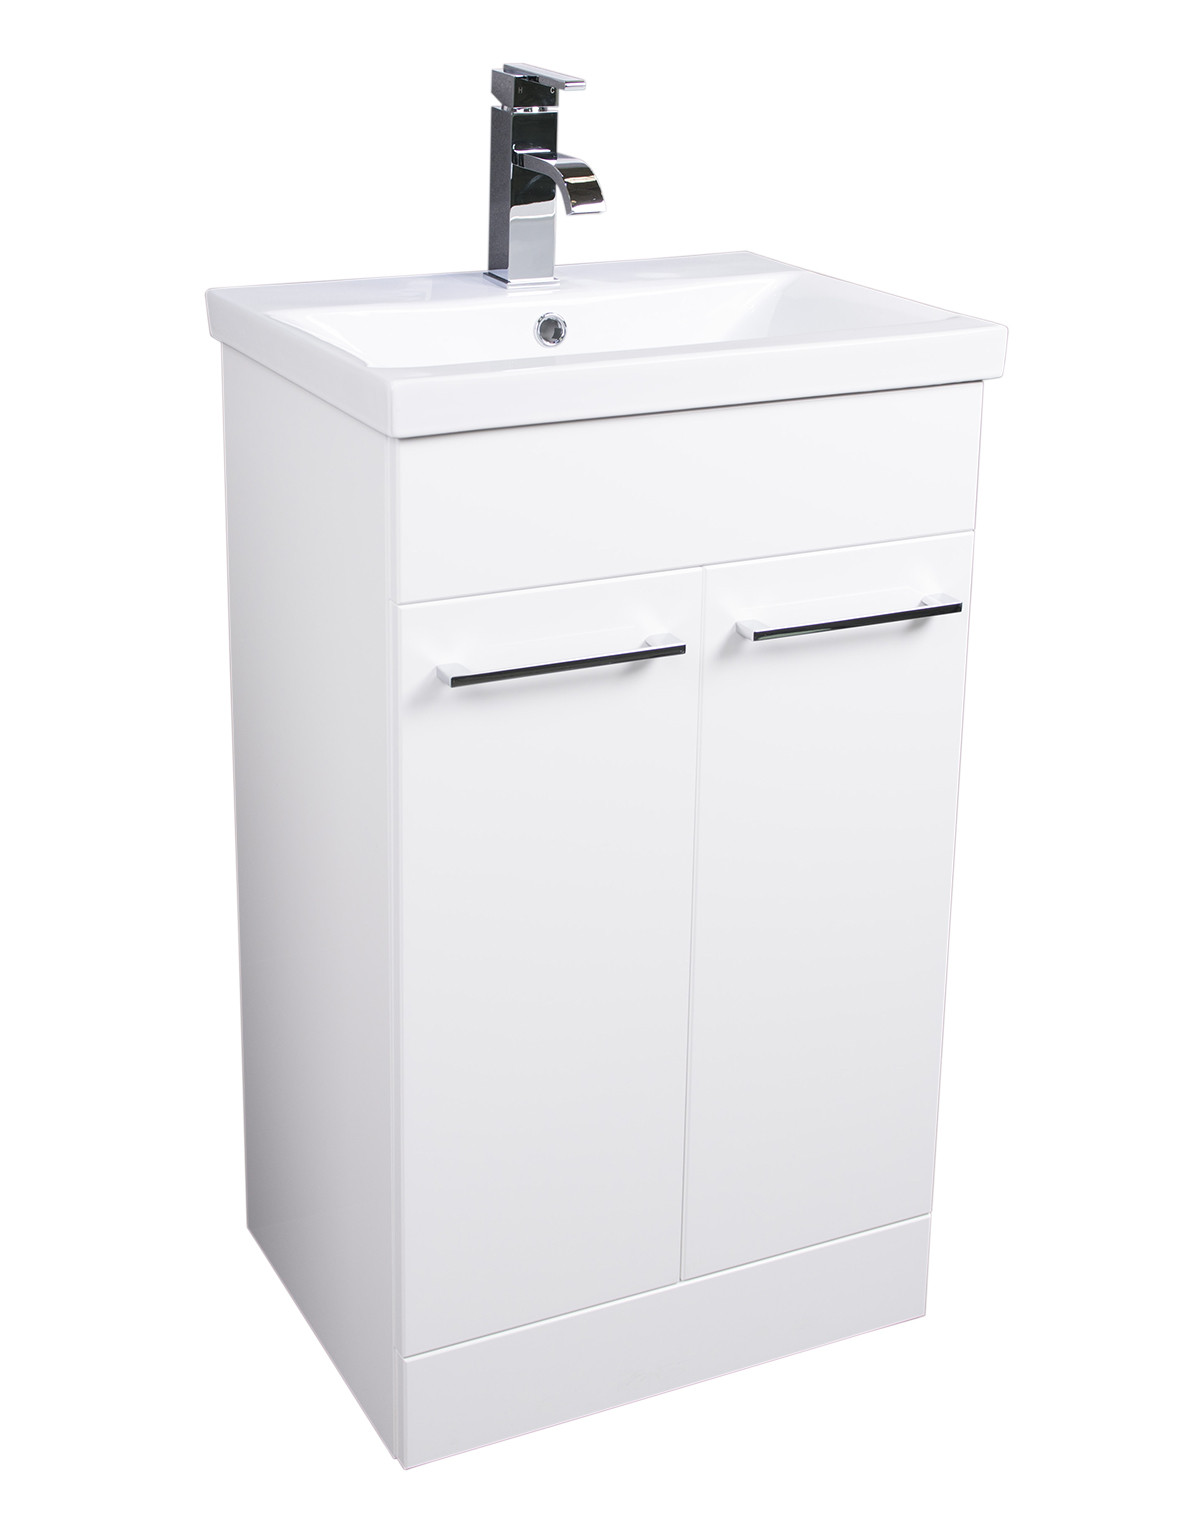 Napoli Gloss White 2 Door 500 Unit & Basin